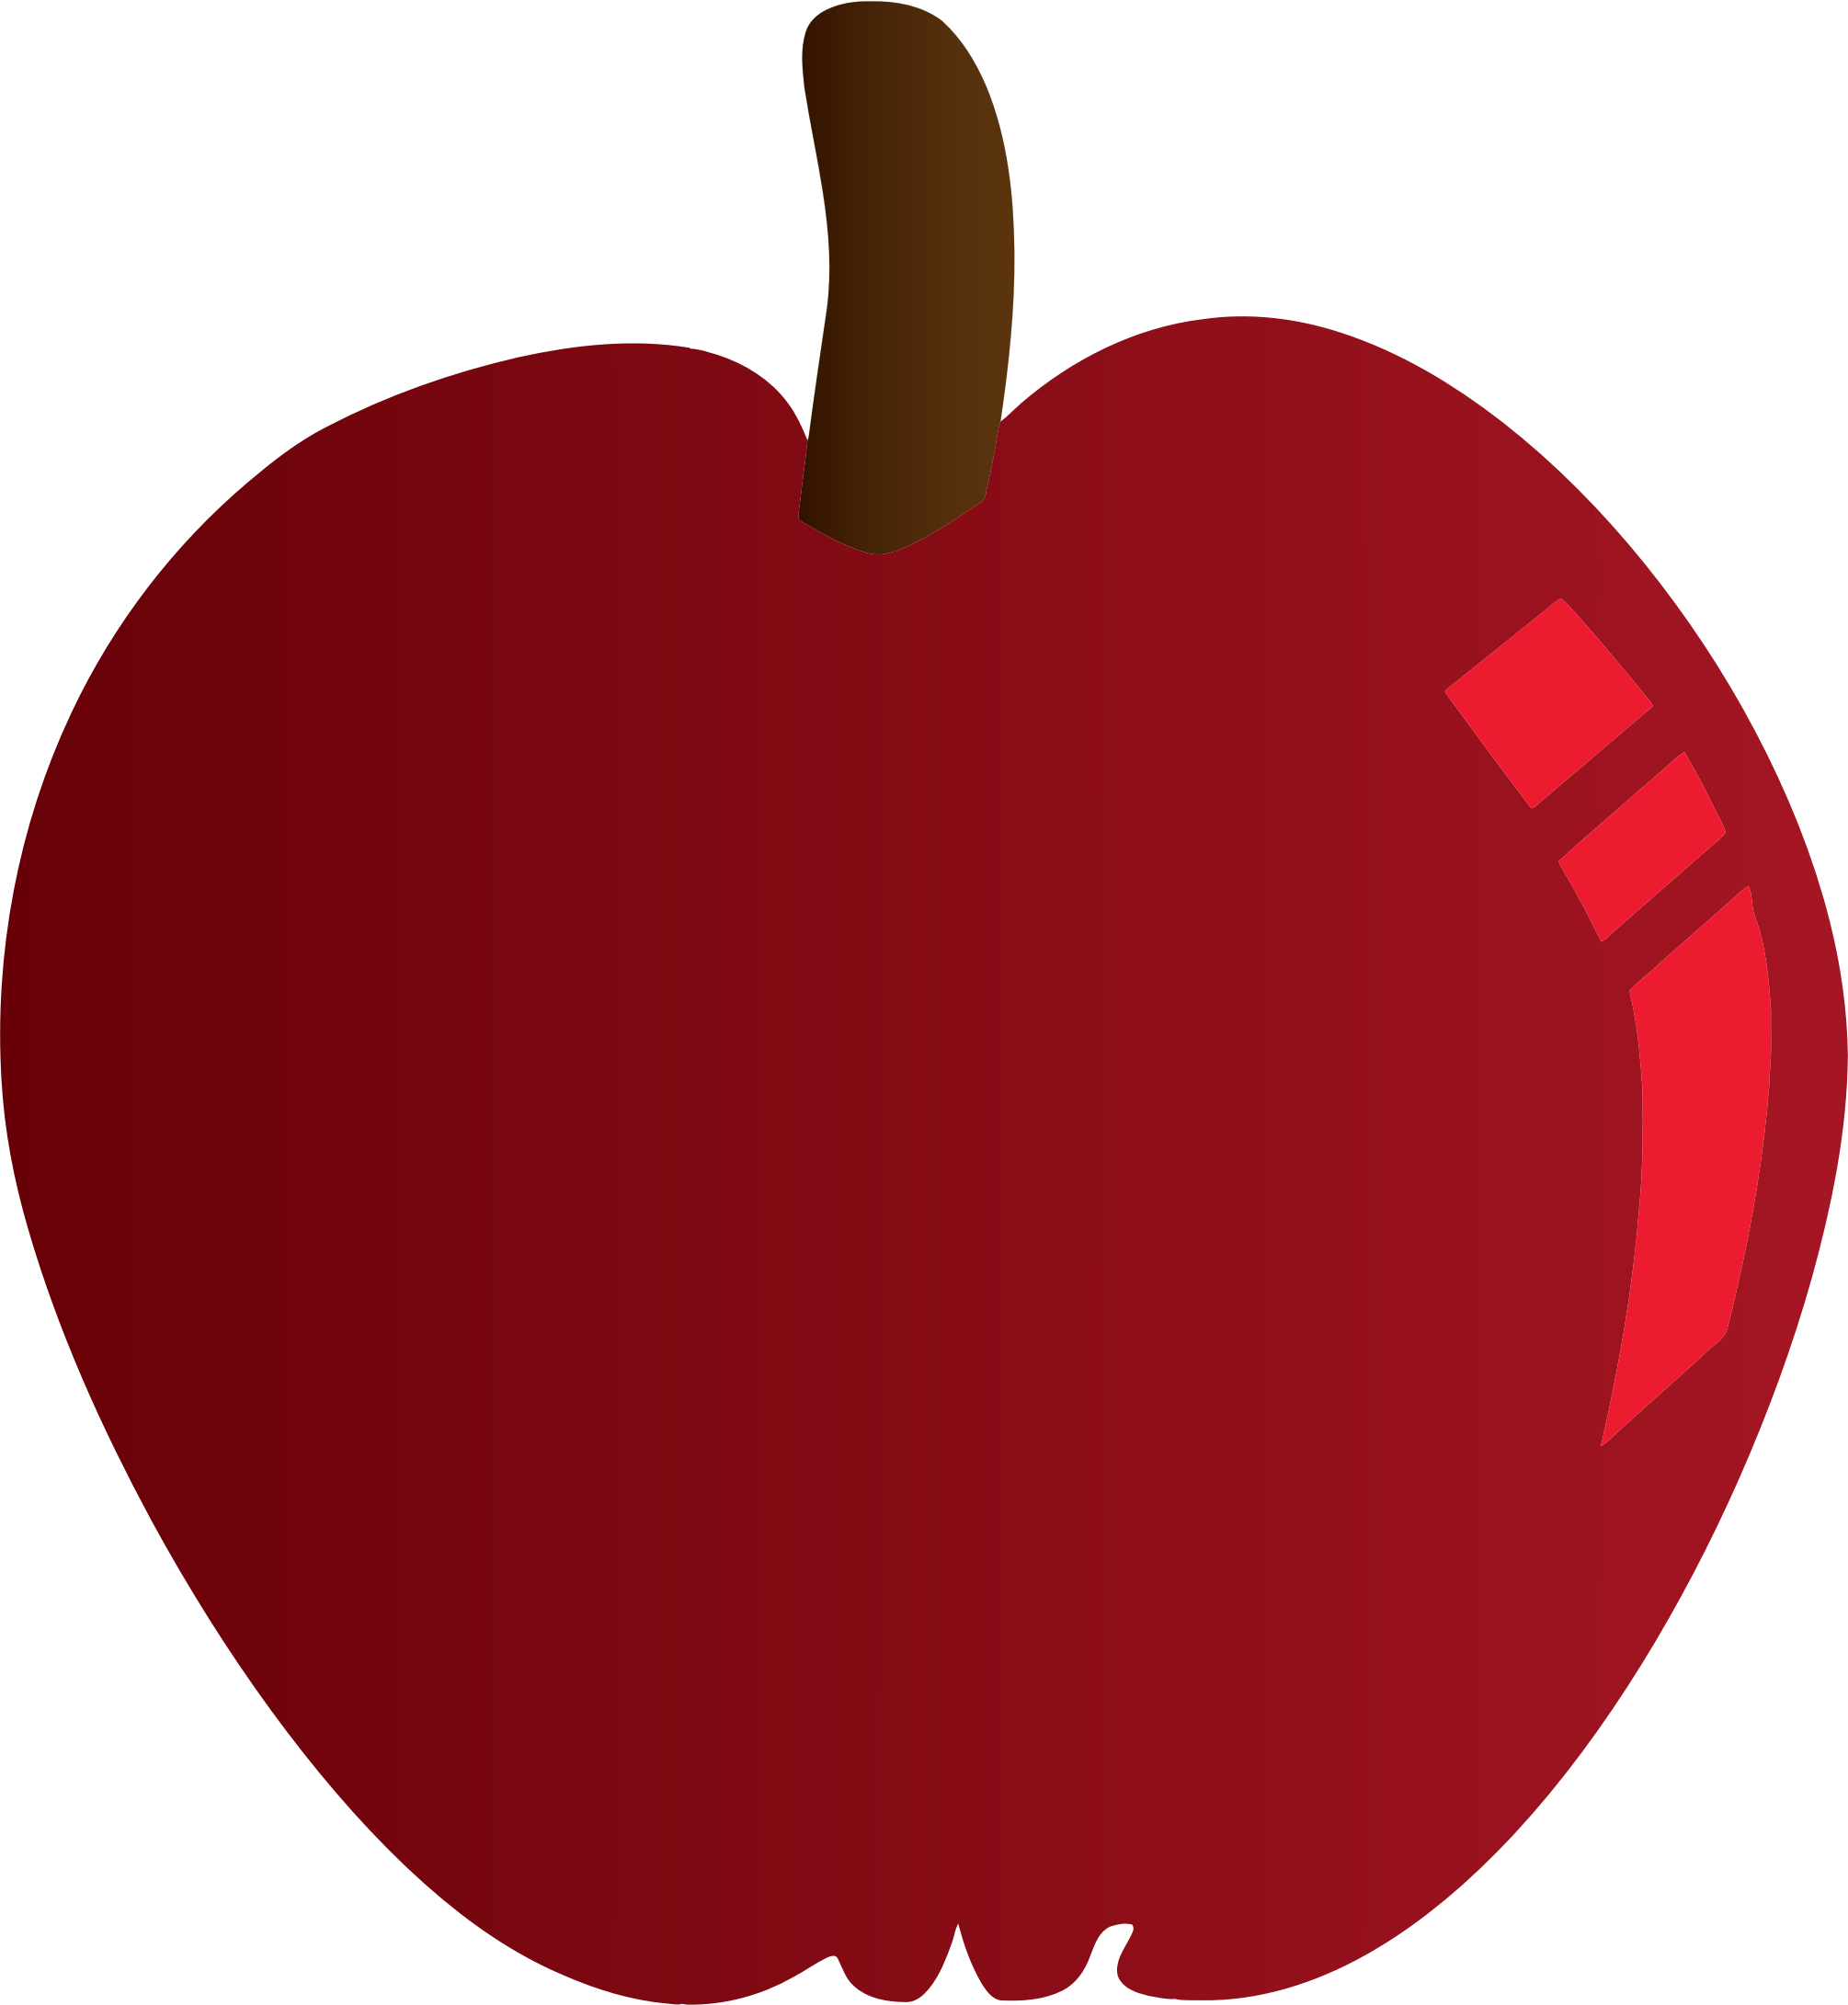 Red Apple by GDJ